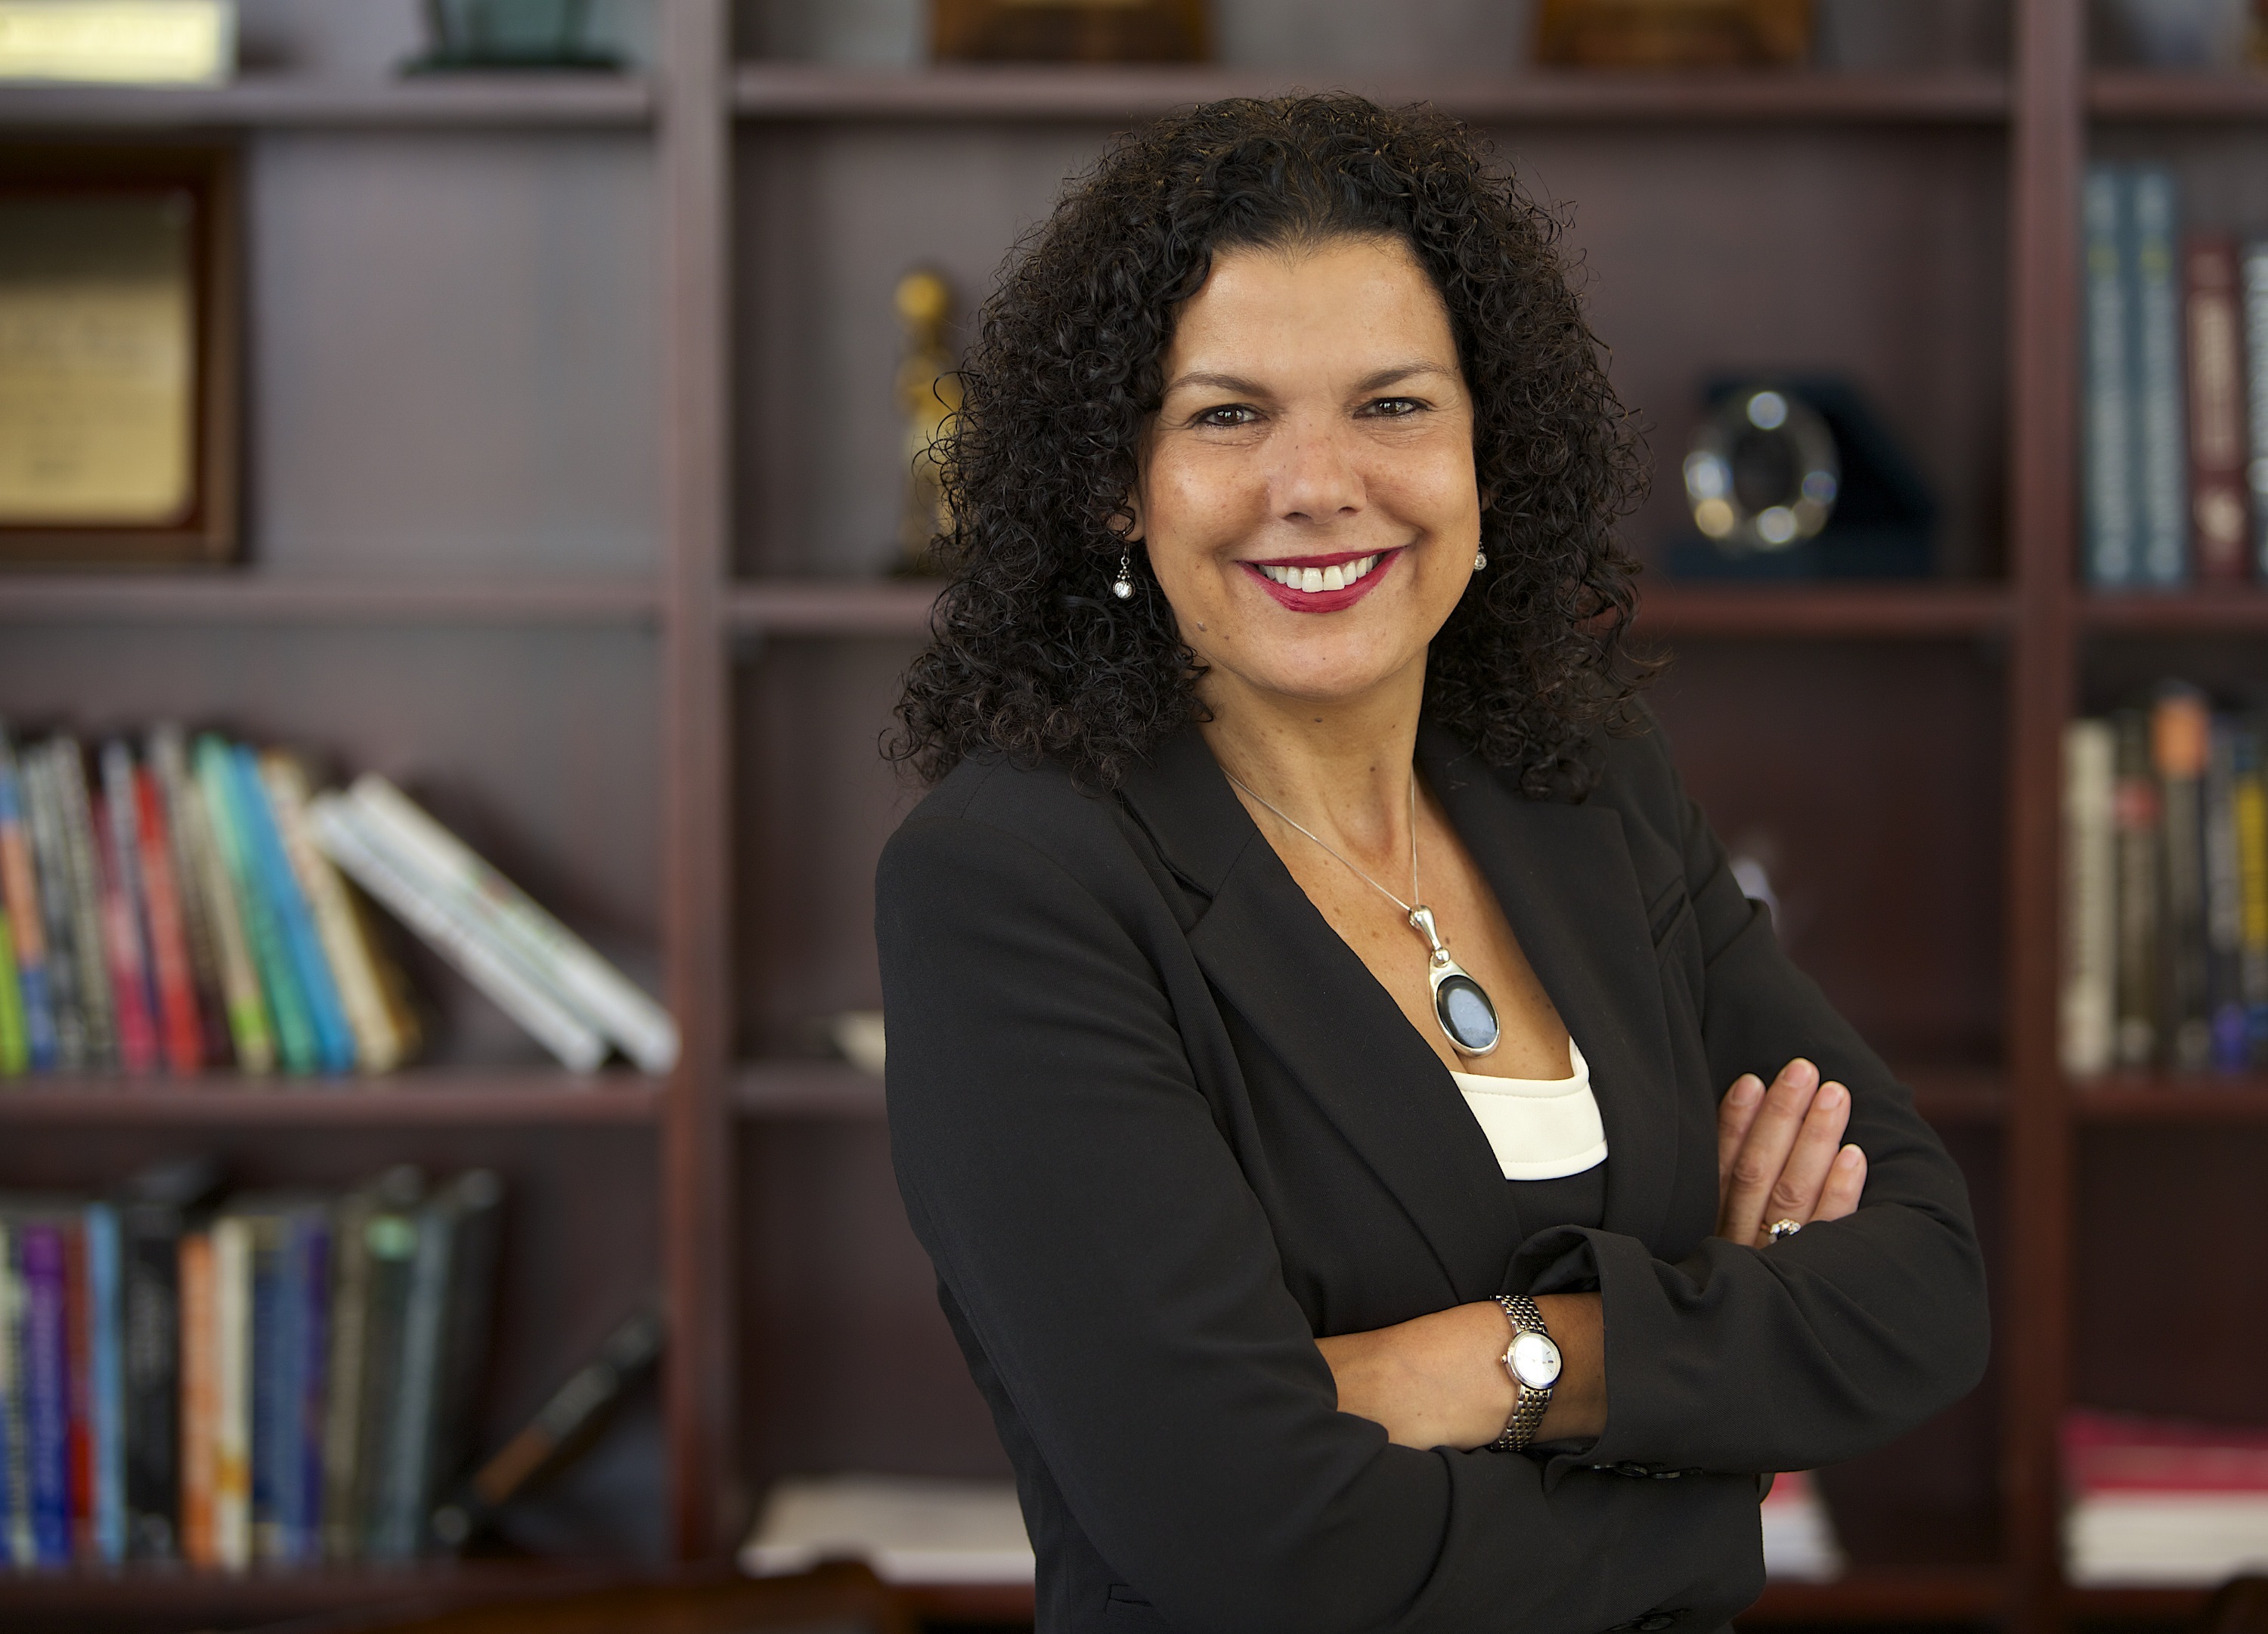 Salma Ghanem appointed interim provost